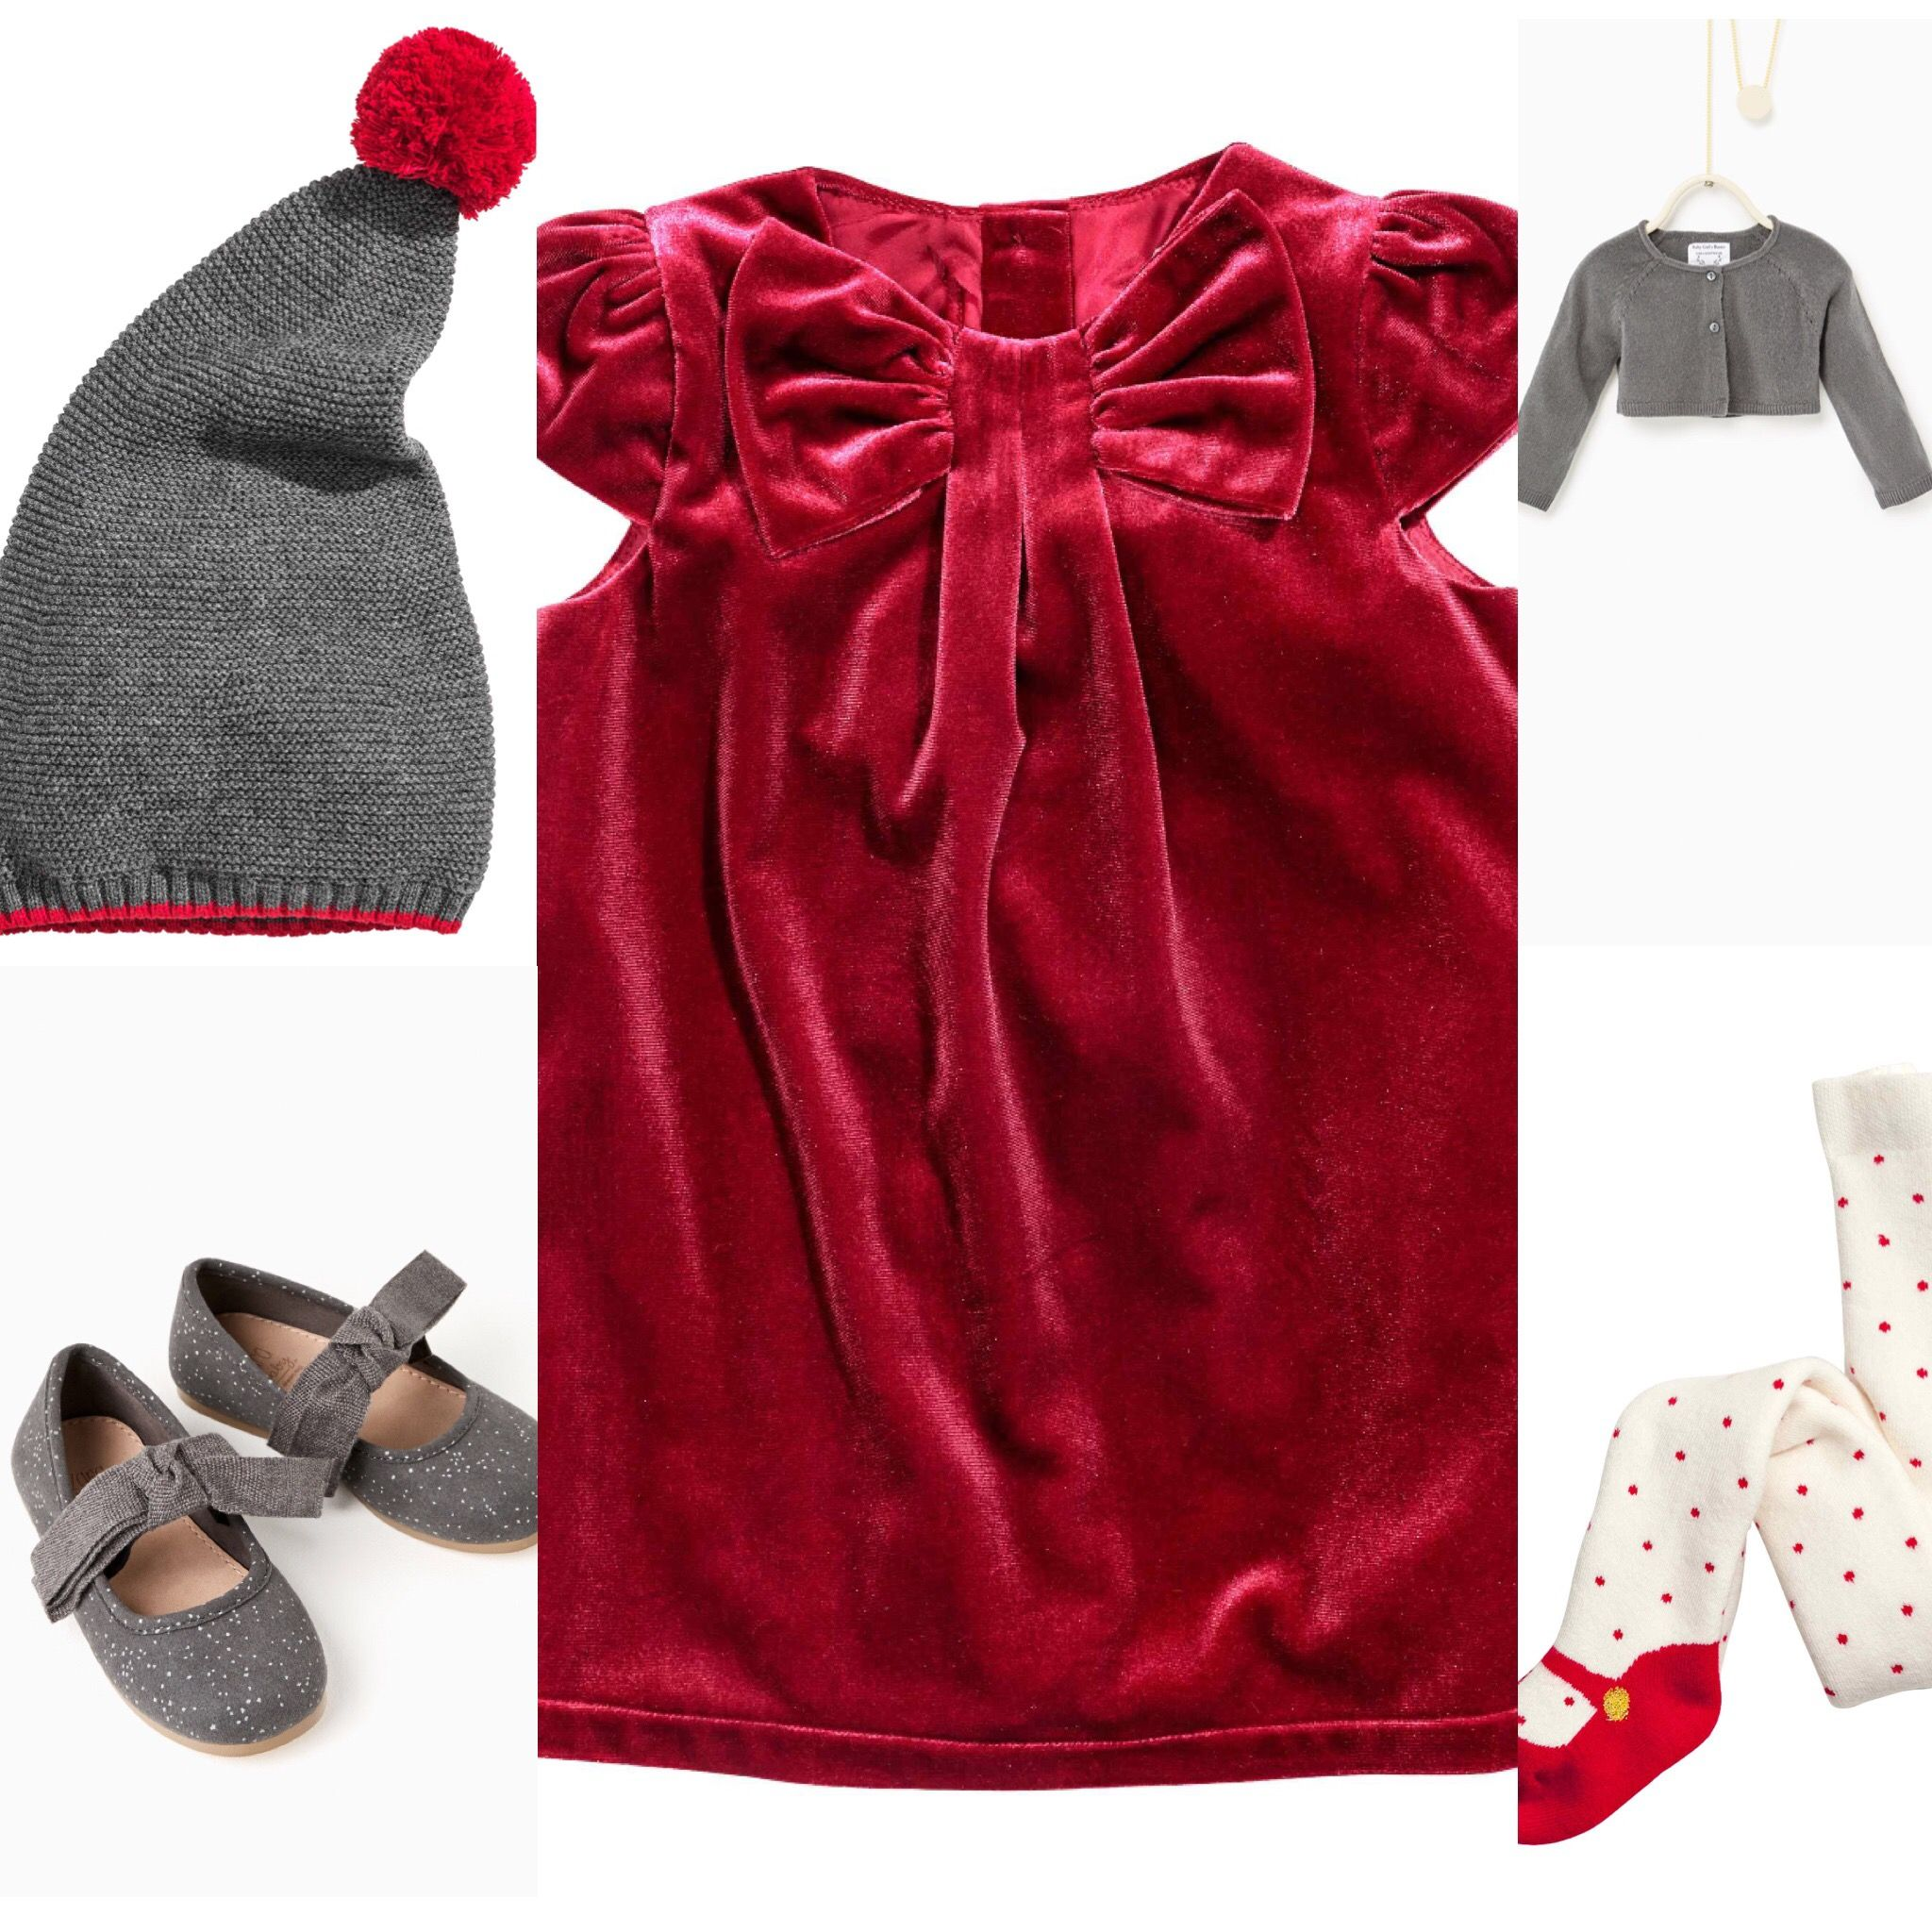 128cff0e8598a Baby girl Christmas outfit idea. H&M red velvet dress, knitted tights, grey  pompom hat. Zara ballet flats and short cardigan. 2016 fall collection.